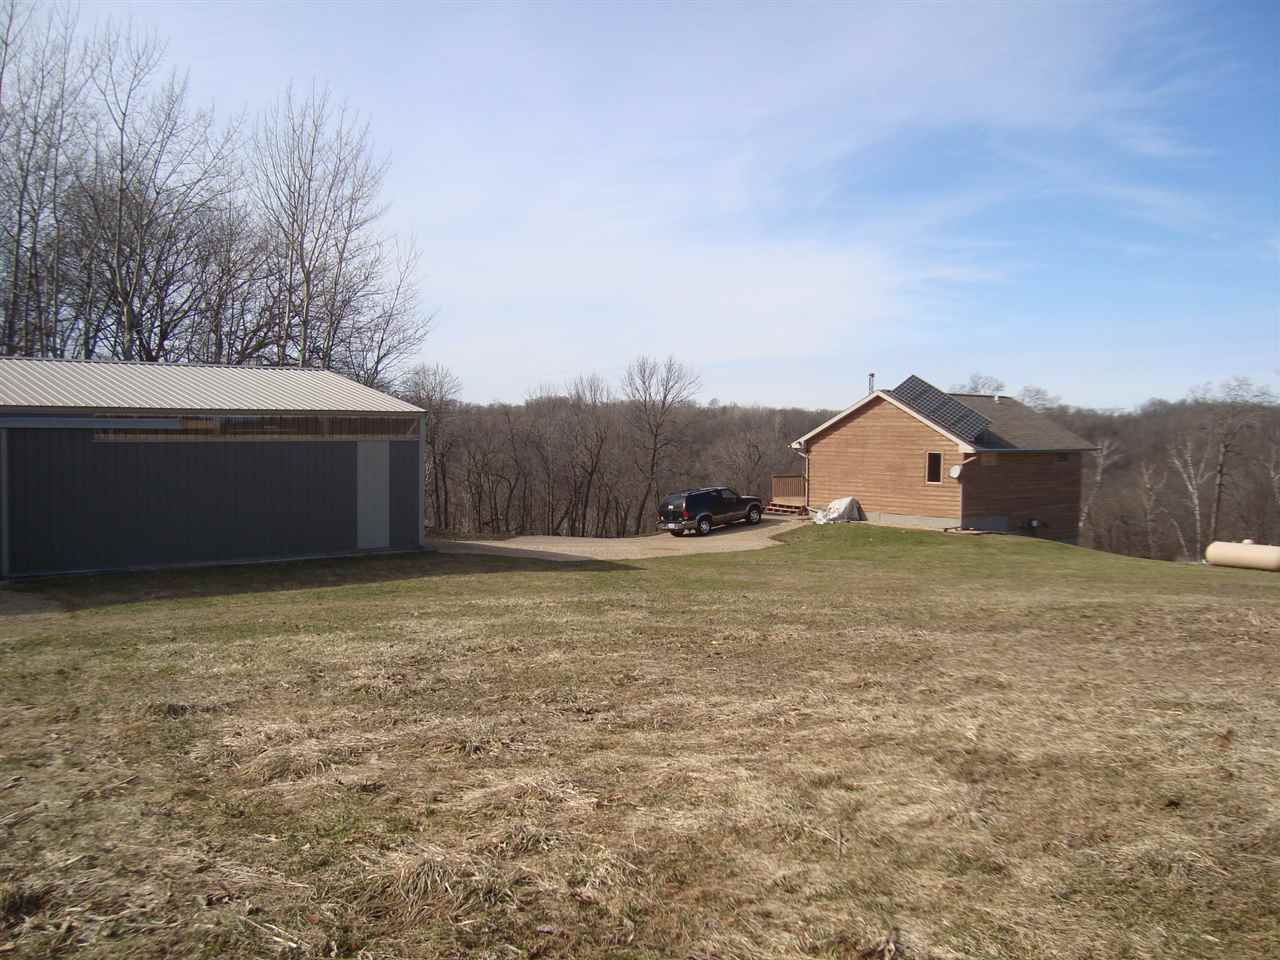 29561 County Road I, Westford, WI 53924